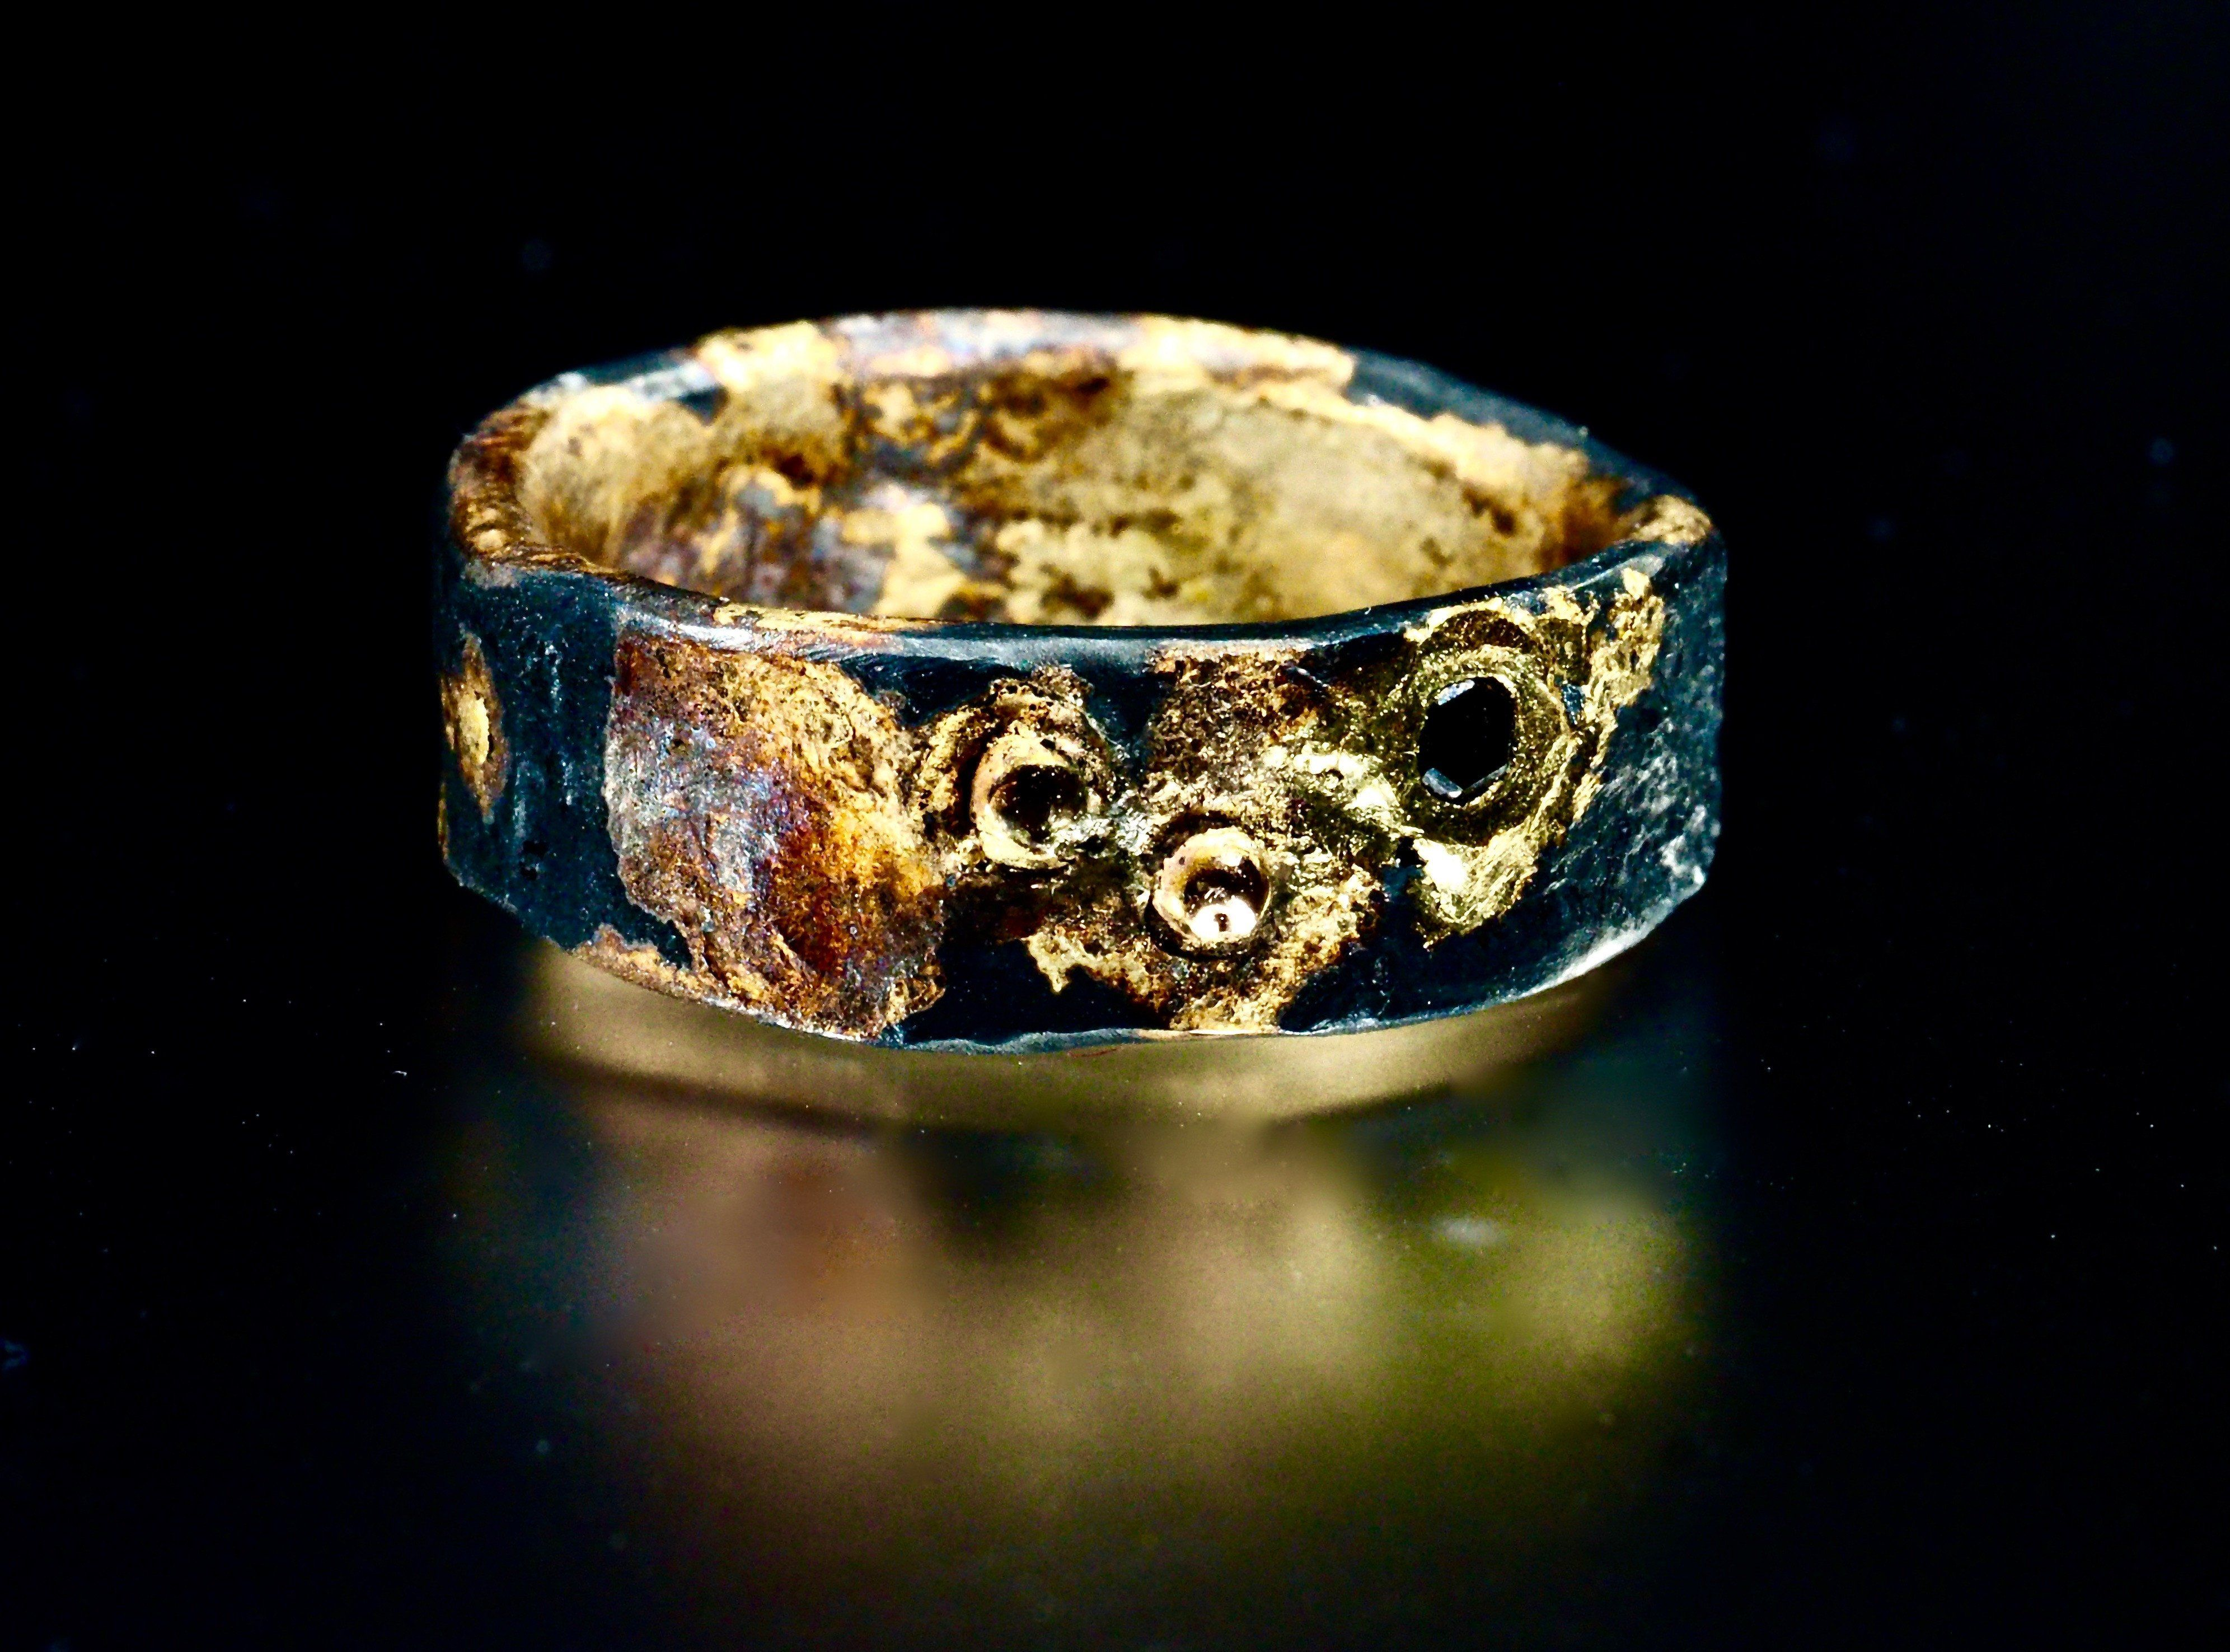 valentine blacksmiths gifts online blacksmith oakbeck wedding cumbria in made forge shop rings